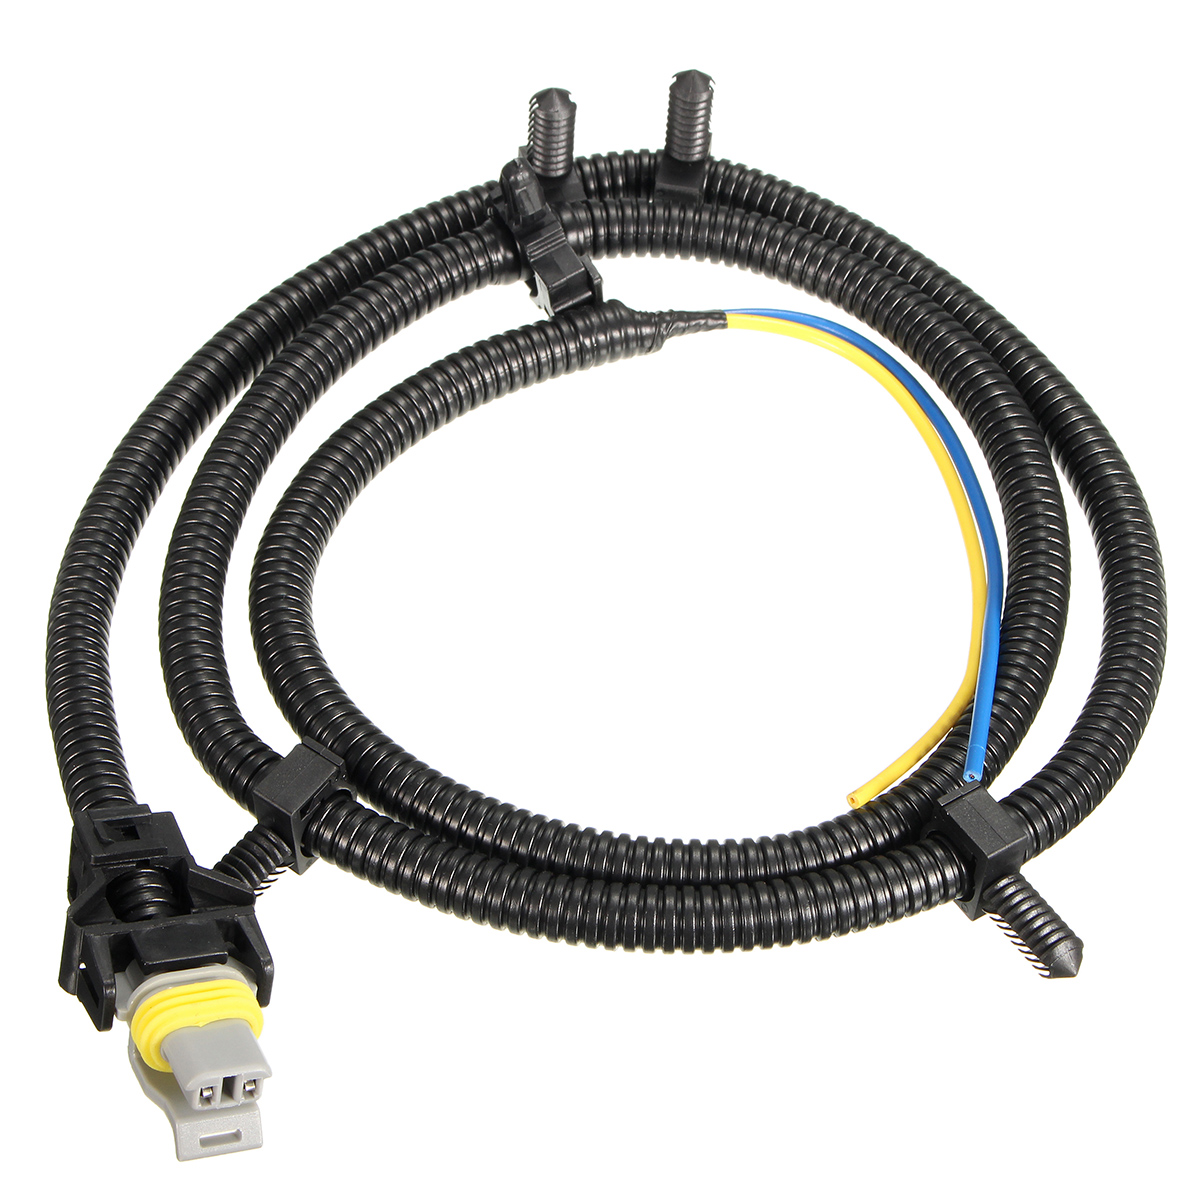 10340314 abs wheel speed sensor harness wire plug pigtail for buick gm chevy new ebay. Black Bedroom Furniture Sets. Home Design Ideas